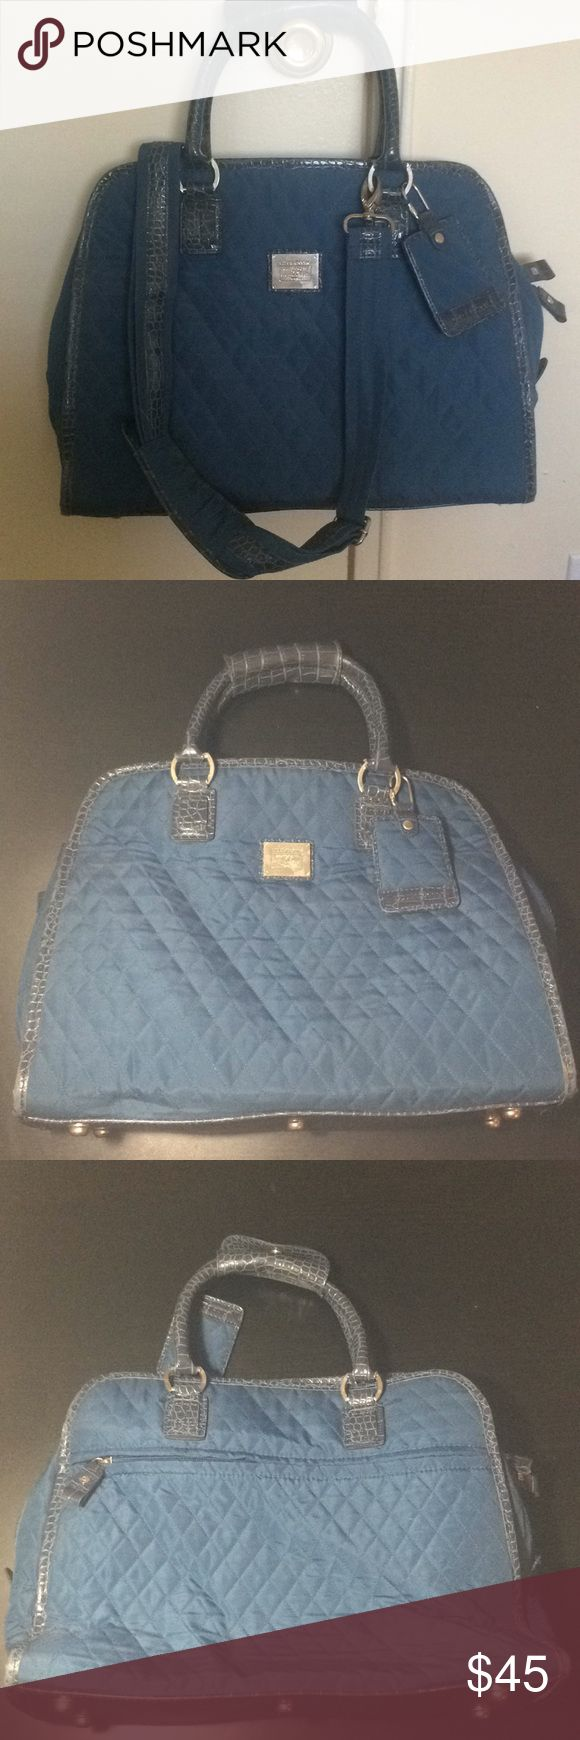 Quilted  Liz Claiborne Laptop Carry On Quilted Blue Liz Claiborne Laptop Case/Carry On with Faux Snakeskin Details Comes with removable shoulder strap and luggage tag. Inside has a padded sleeve for a Laptop, and room for books, files, etc. 3 interior pockets, one with zipper 2 open outside compartments, and one zippered Excellent Condition.  Great for business travel and very stylish, I got compliments all the time! Liz Claiborne Bags Laptop Bags